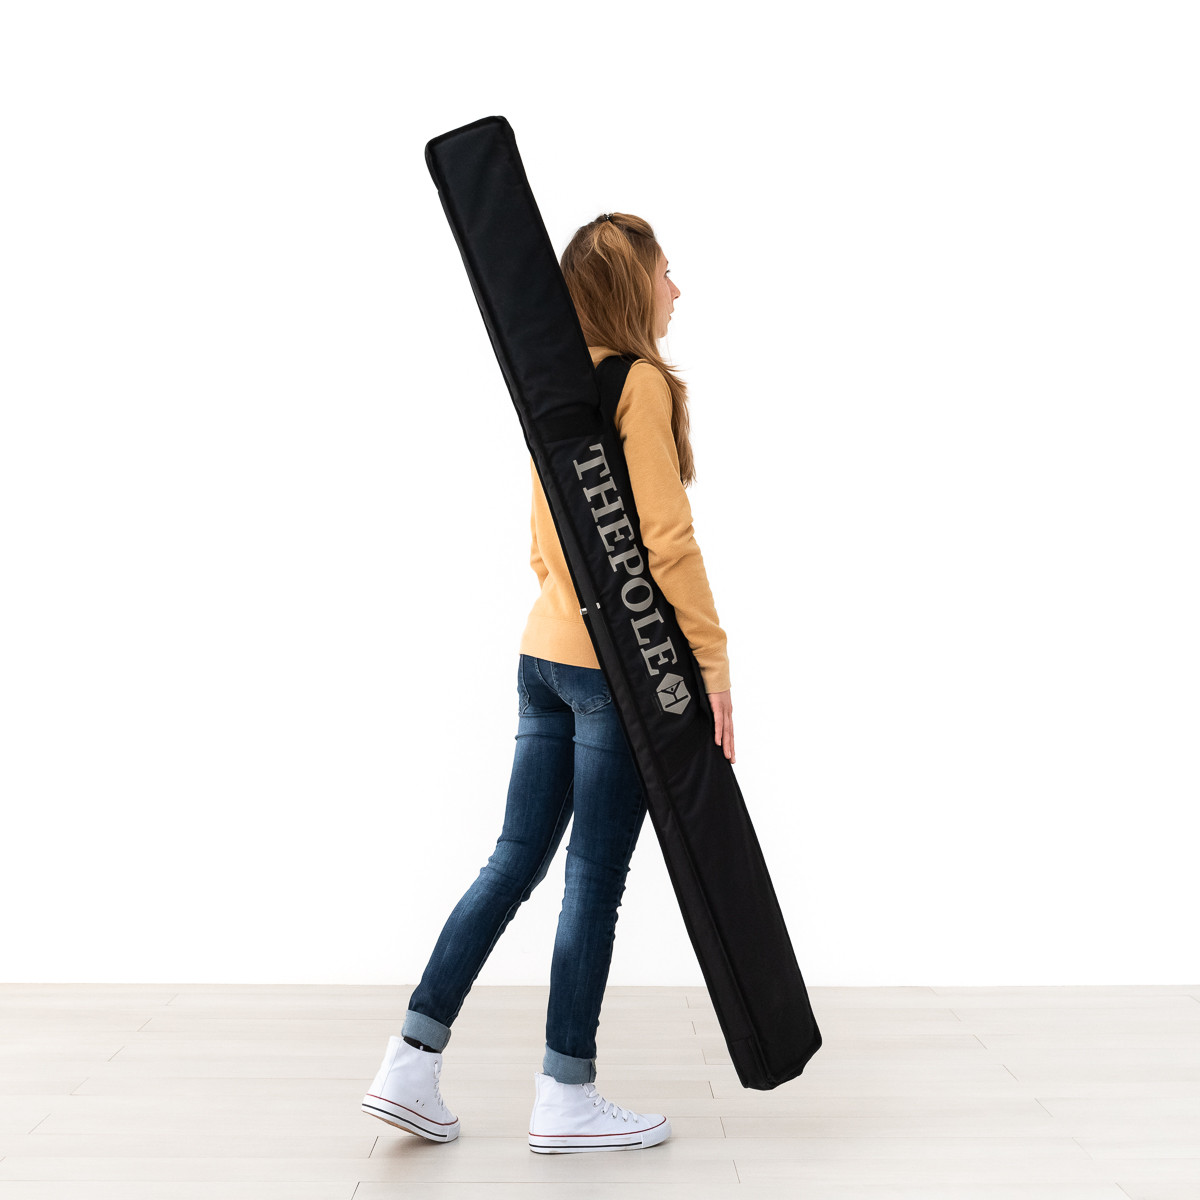 Carrying Bag for the pole of Pole Hive Podium